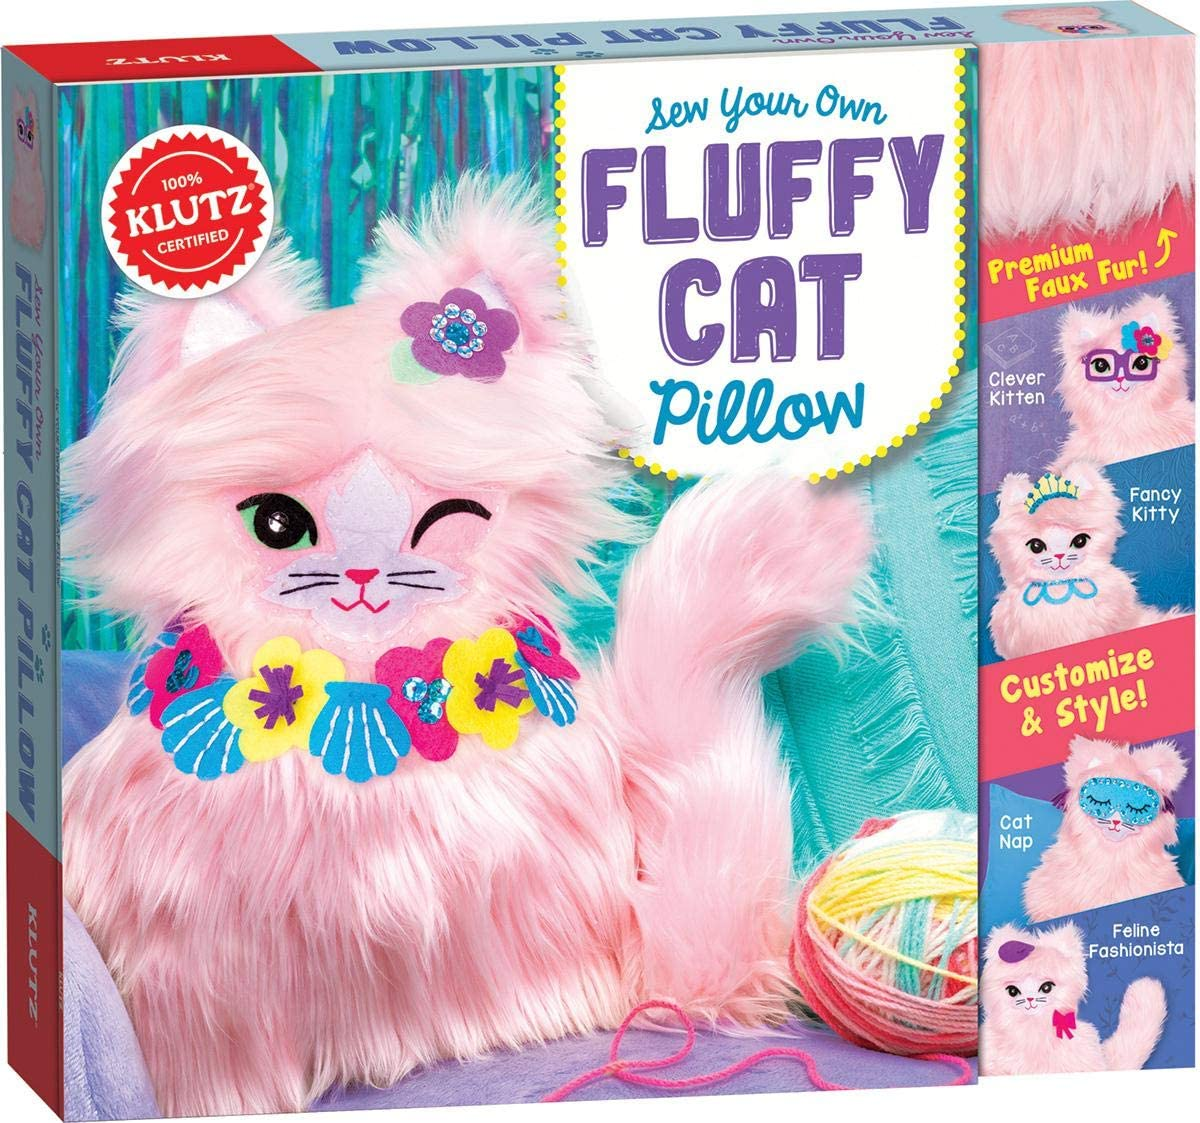 Sew Your Own Fluffy Max 44% OFF Cat Al sold out. Klutz Kit Craft Pillow